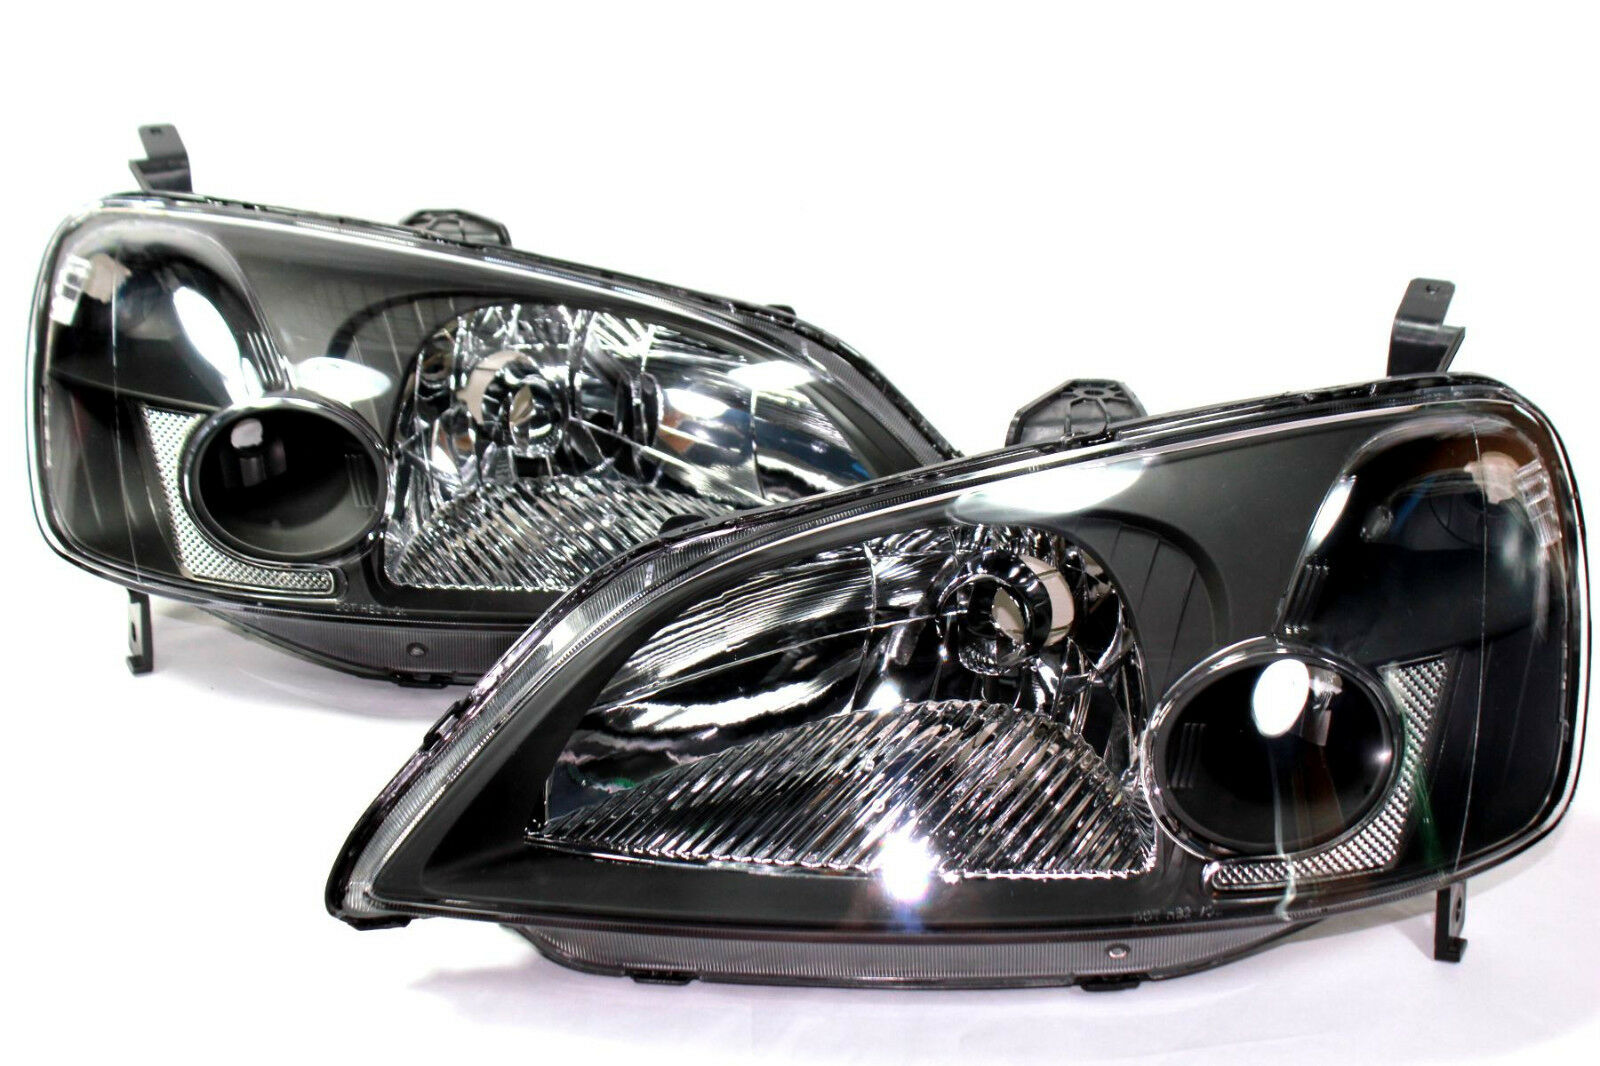 01 03 Honda Civic ES EM 2 Door JDM Black Headlights W/ Chrome Reflector 1  Of 2Only 3 Available See More